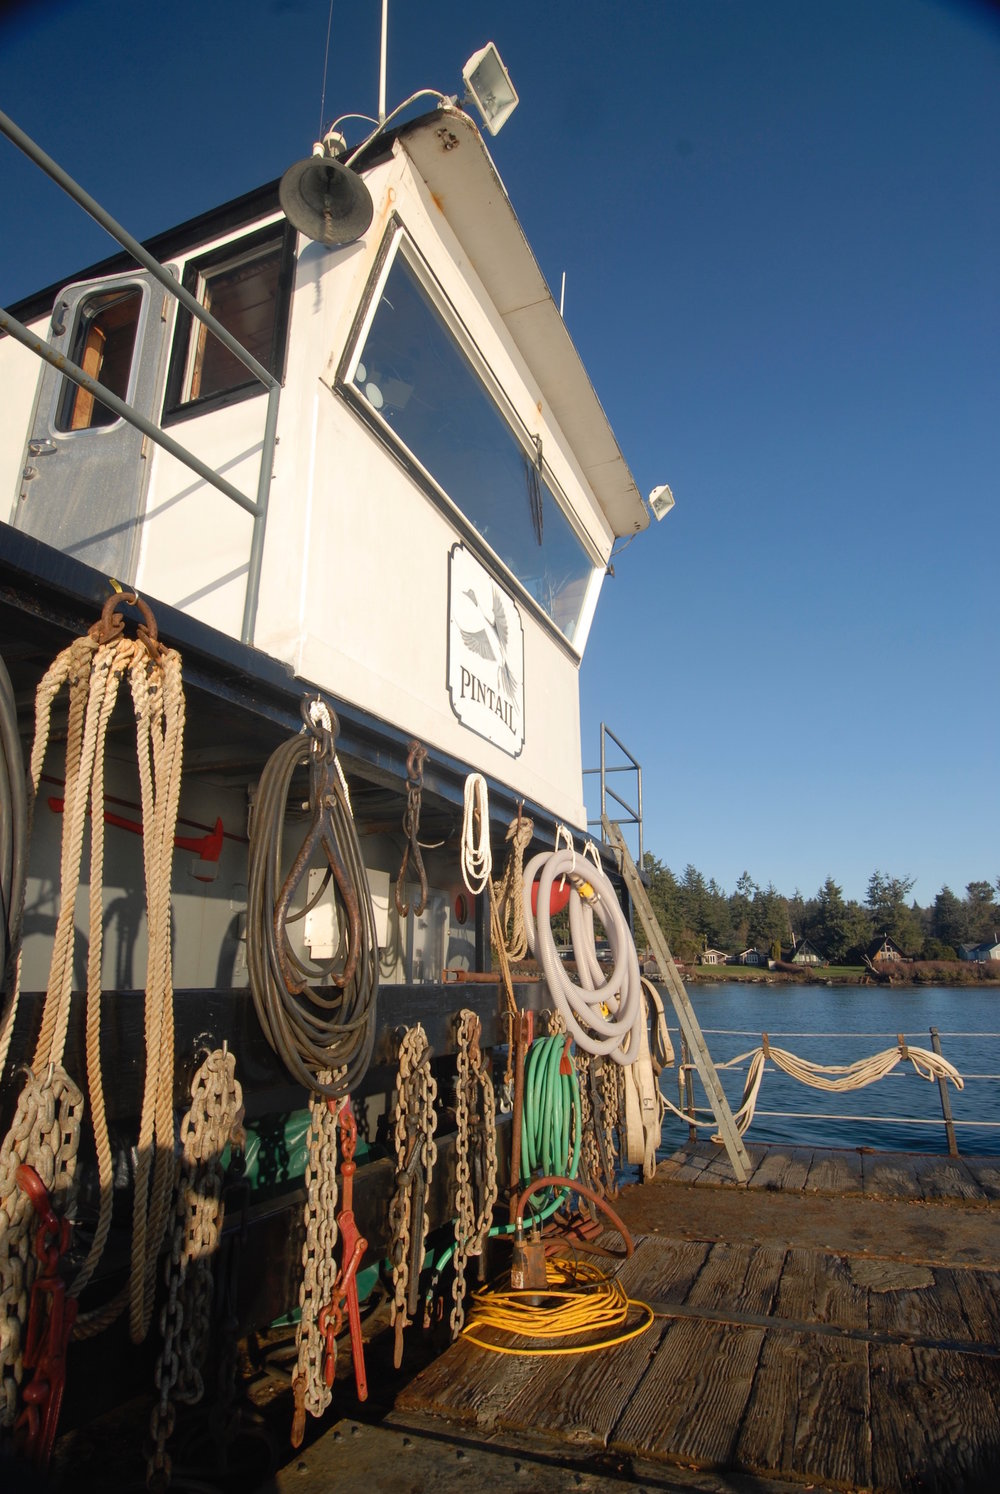 View of the Pintail's wheel house from the work deck